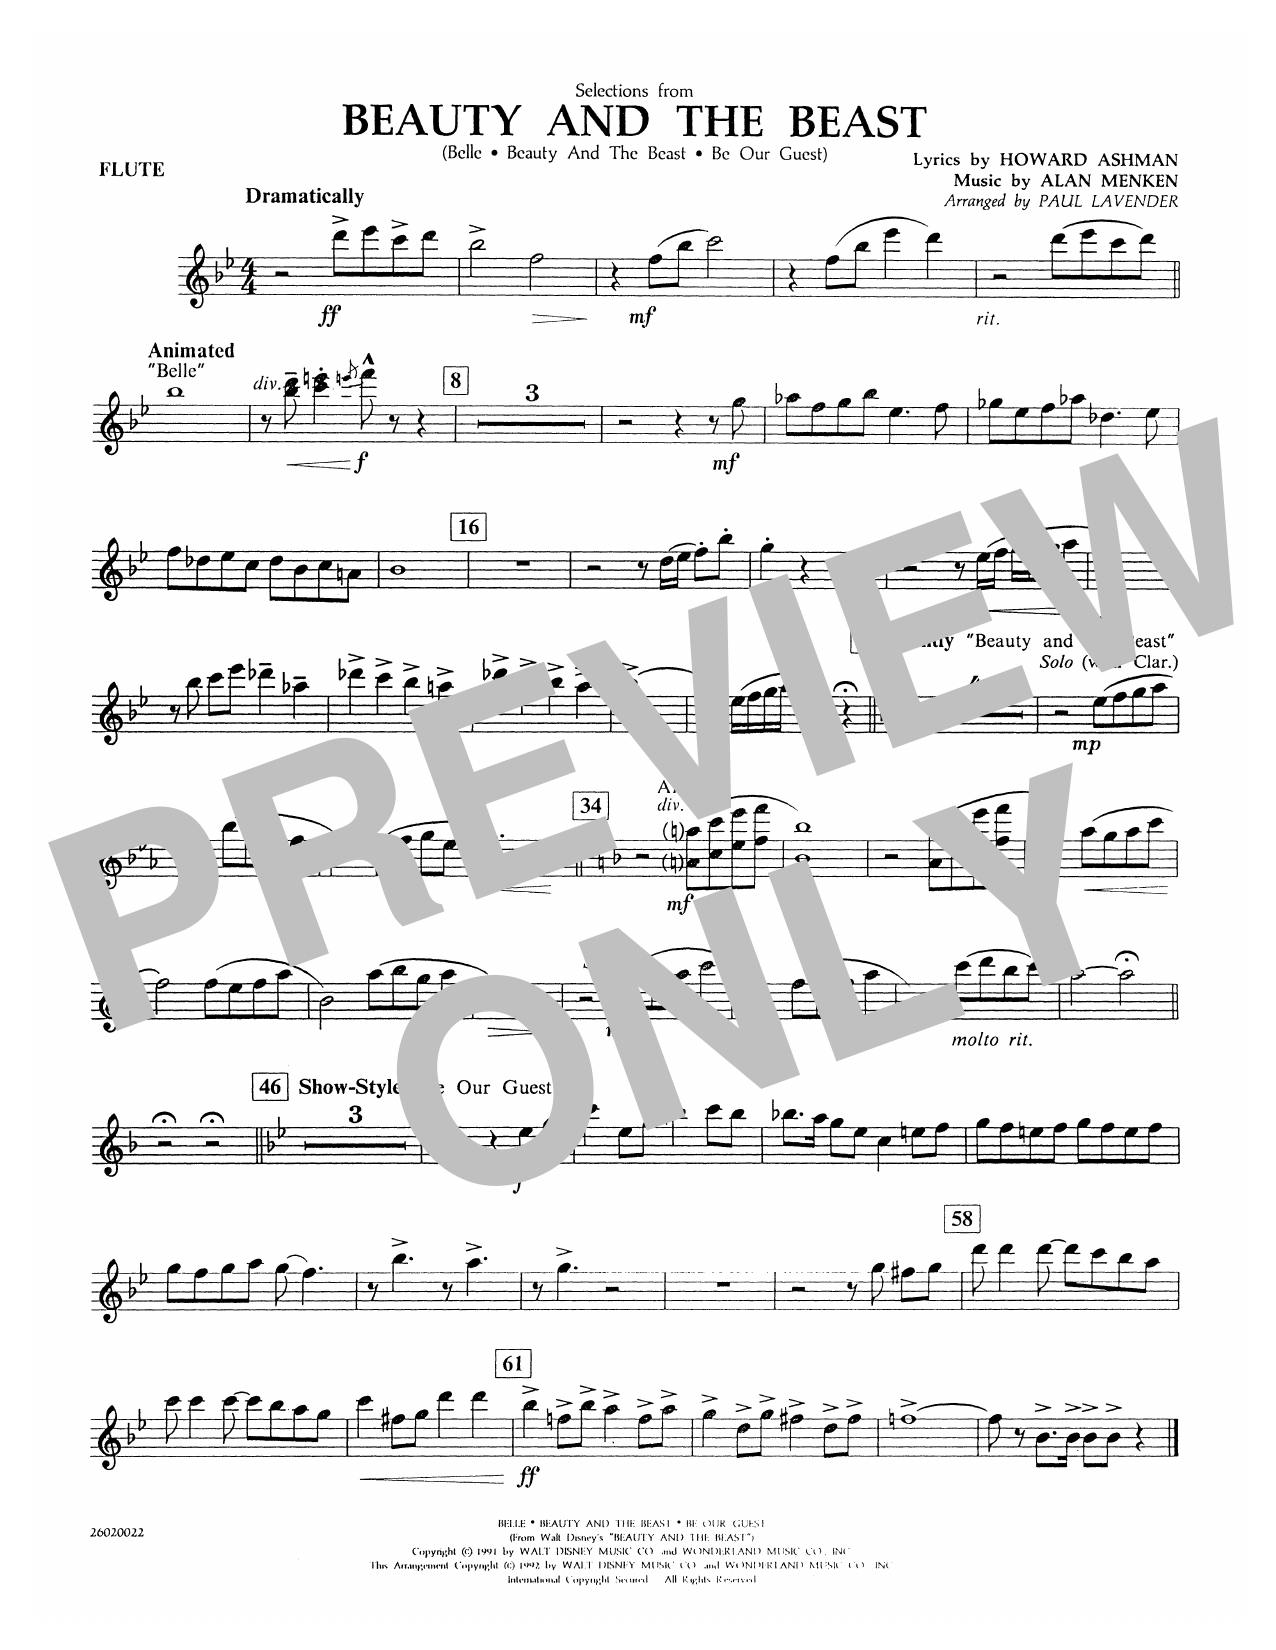 Paul Lavender Selections from Beauty and the Beast - Flute sheet music notes and chords. Download Printable PDF.